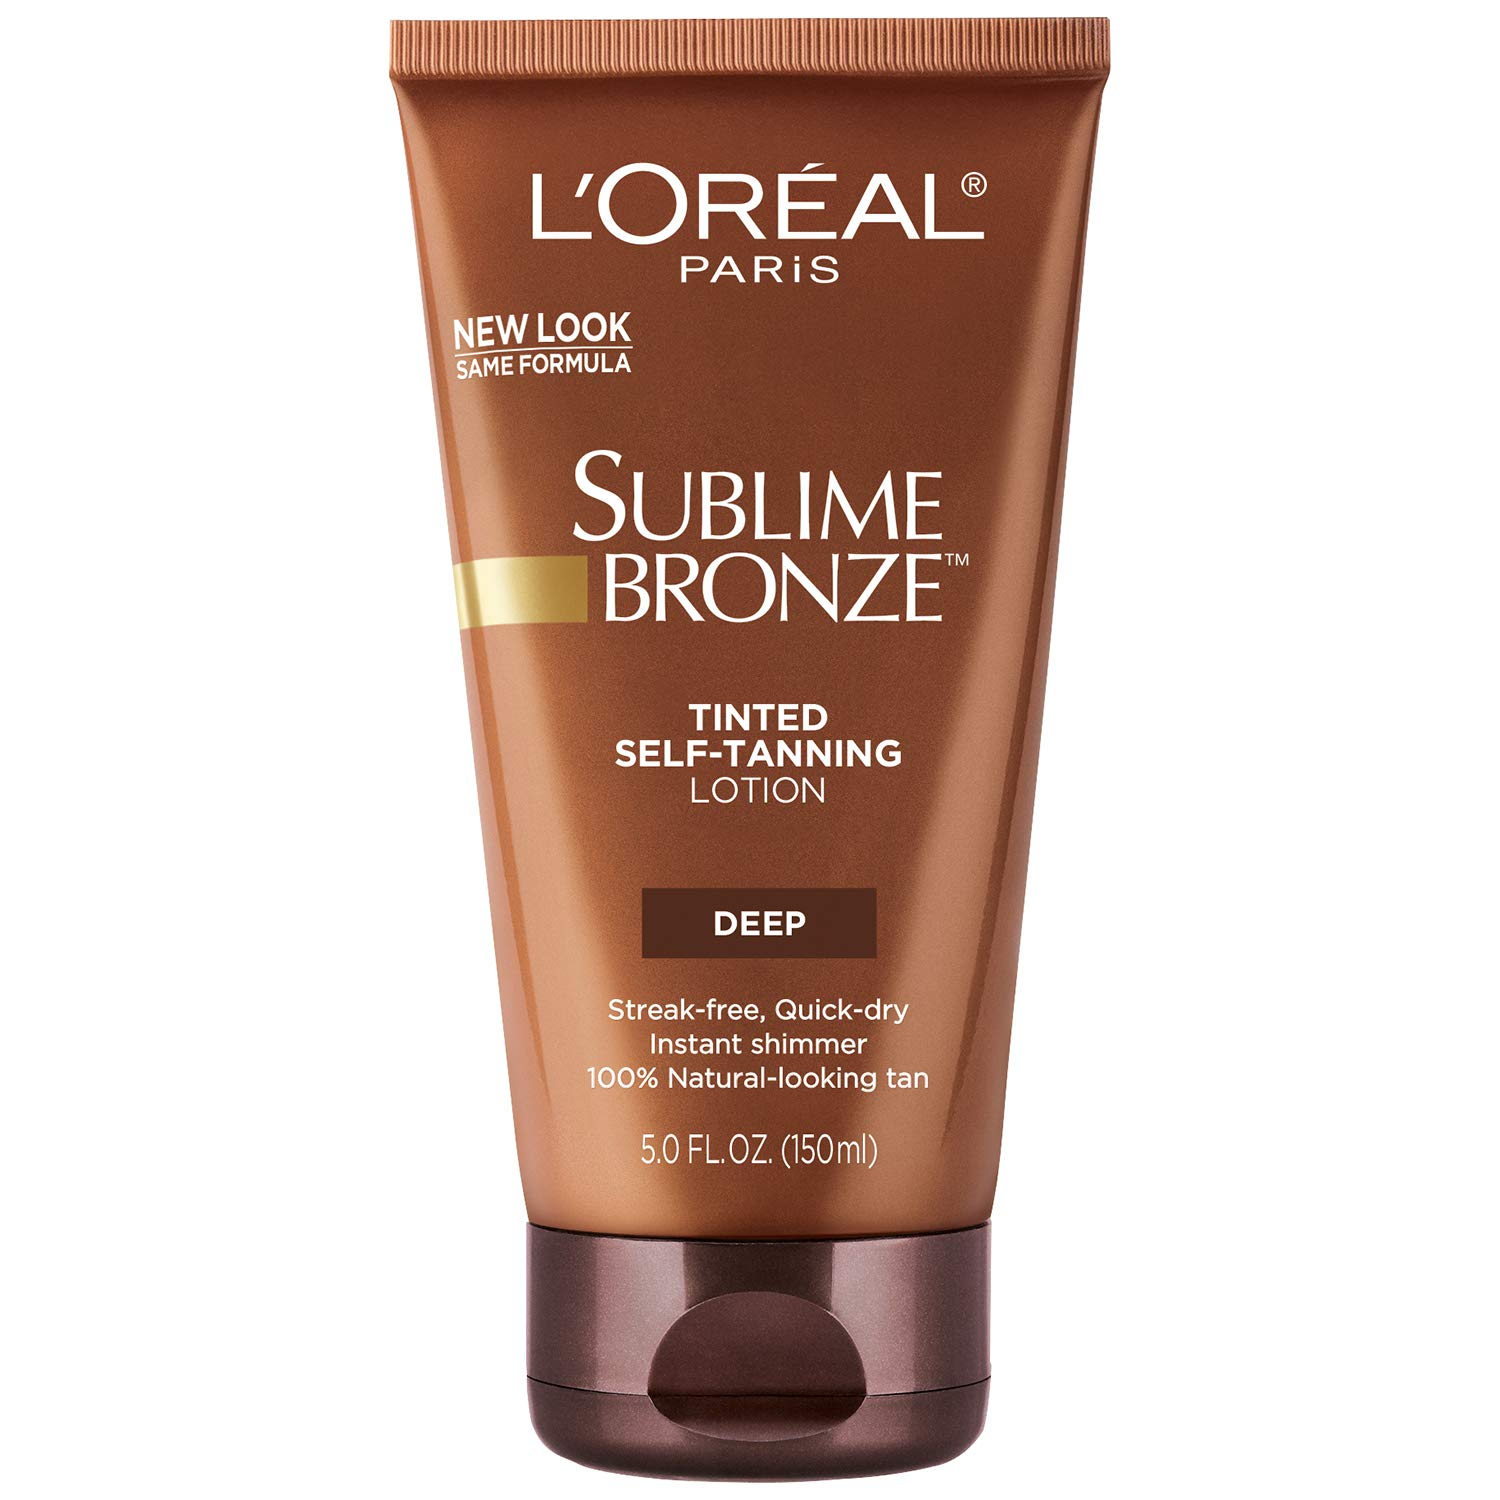 L'Oreal Paris Sublime Bronze Tinted Self-Tanning Lotion Deep Natural Tan 5 fl. oz. by L'Oreal Paris